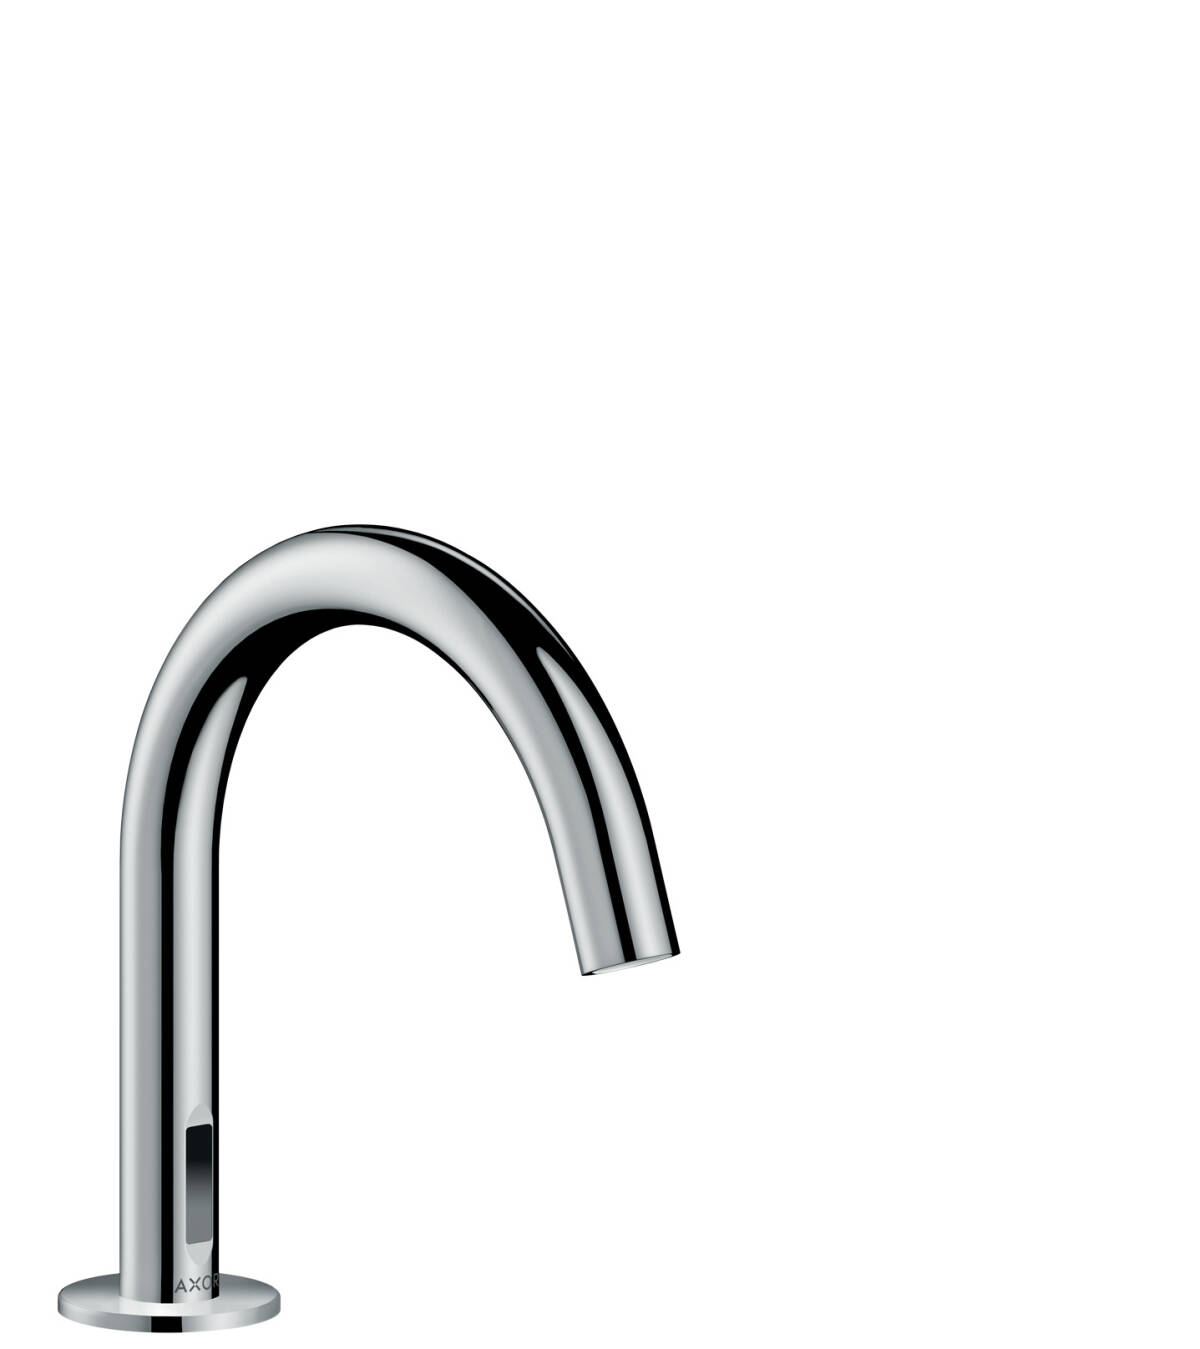 Electronic basin mixer with temperature pre-adjustment with mains connection 230 V, Brushed Nickel, 38010820